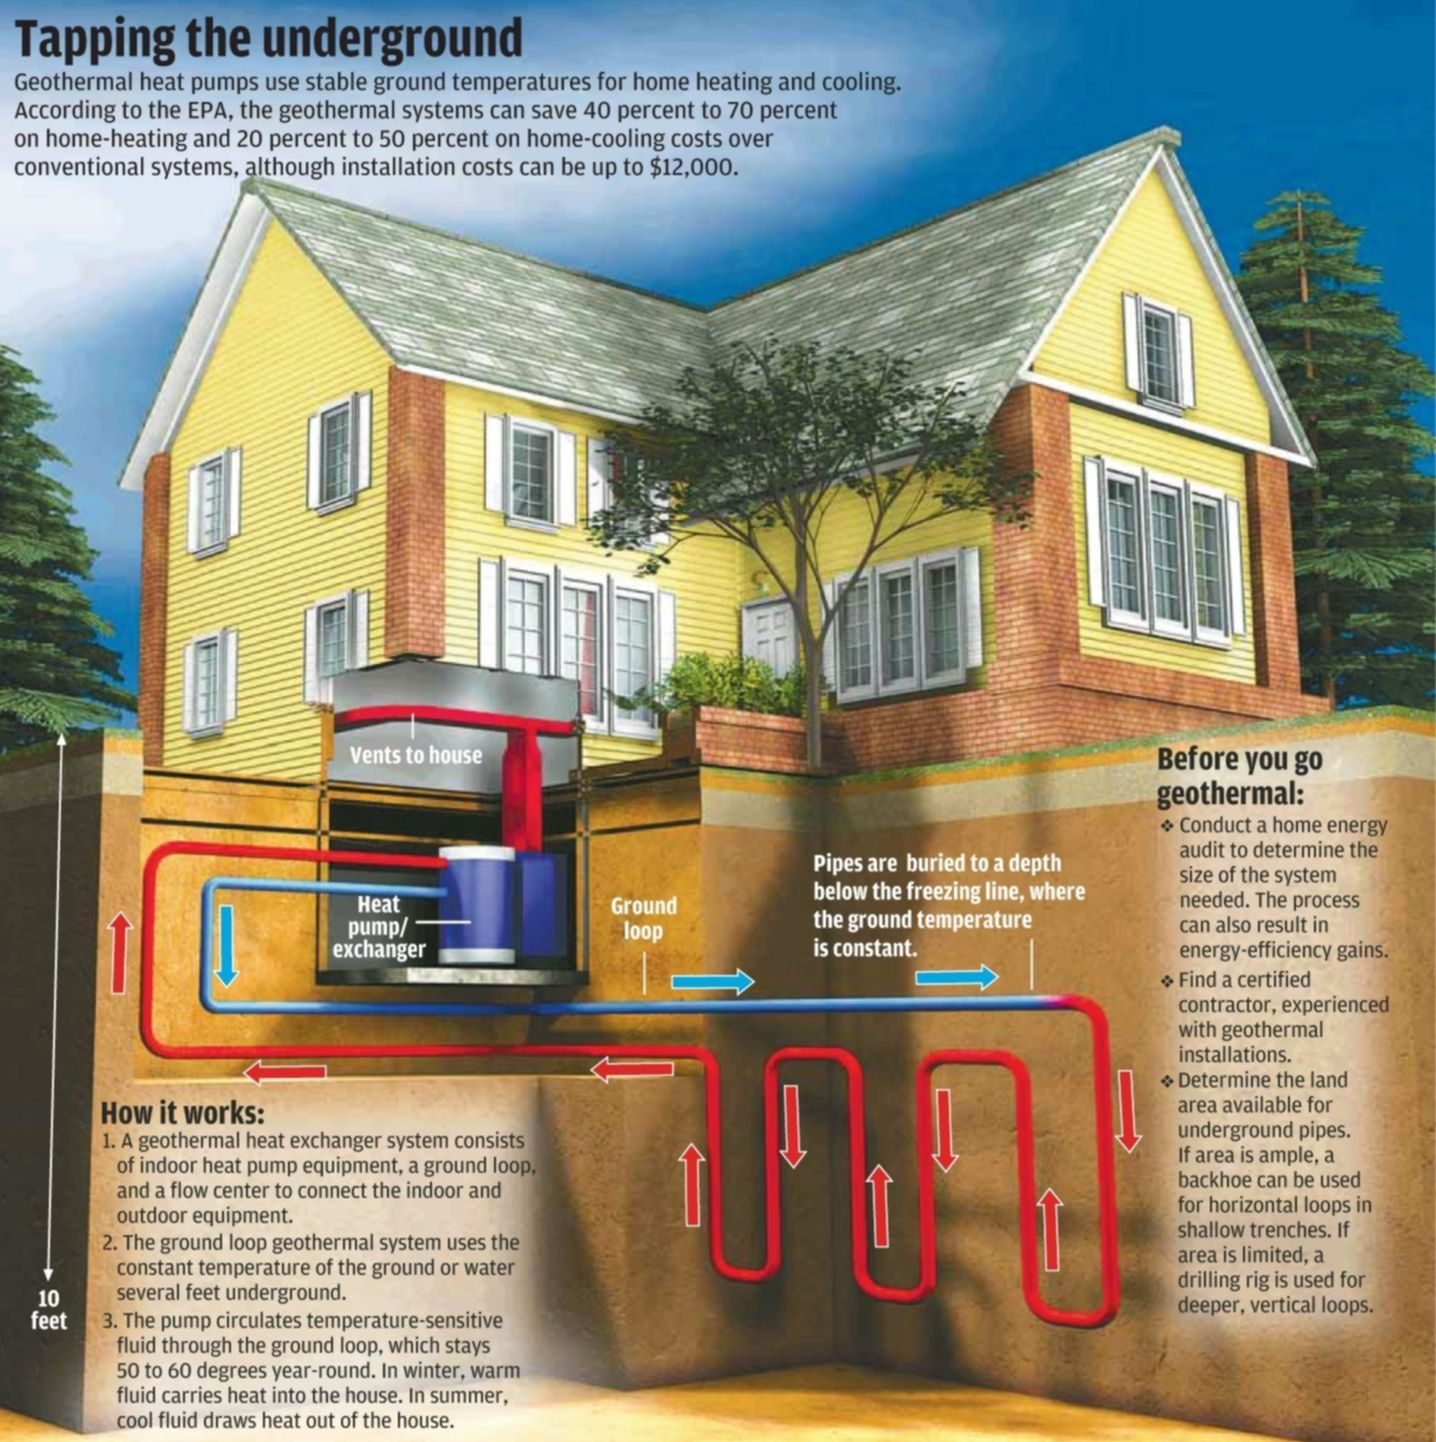 Image of house and undergound geothermal water loop